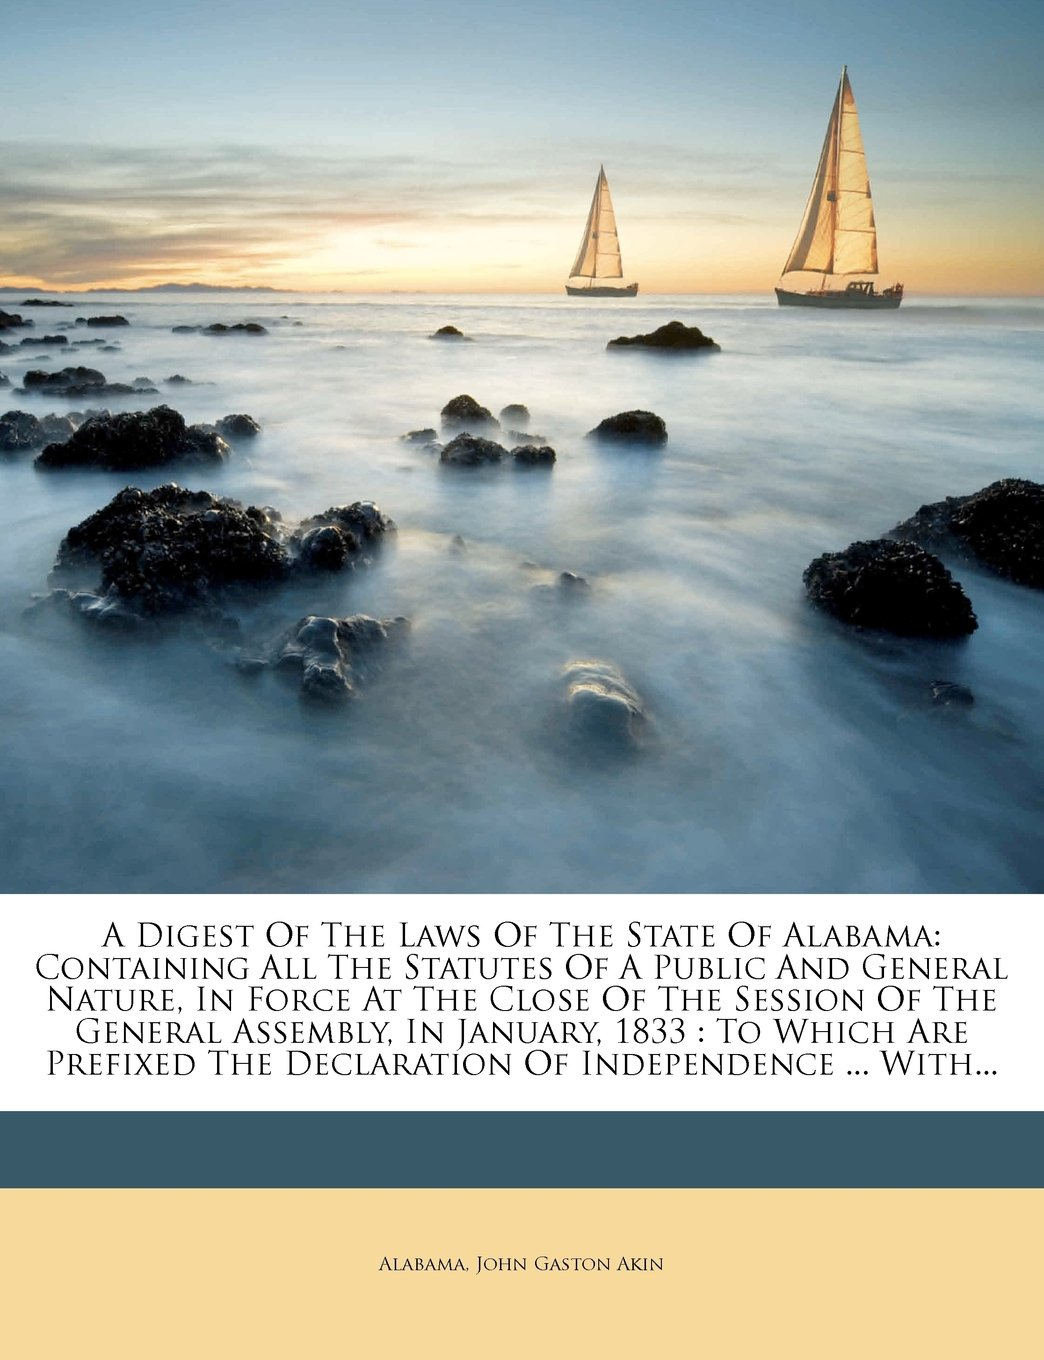 Download A Digest Of The Laws Of The State Of Alabama: Containing All The Statutes Of A Public And General Nature, In Force At The Close Of The Session Of The ... The Declaration Of Independence ... With... pdf